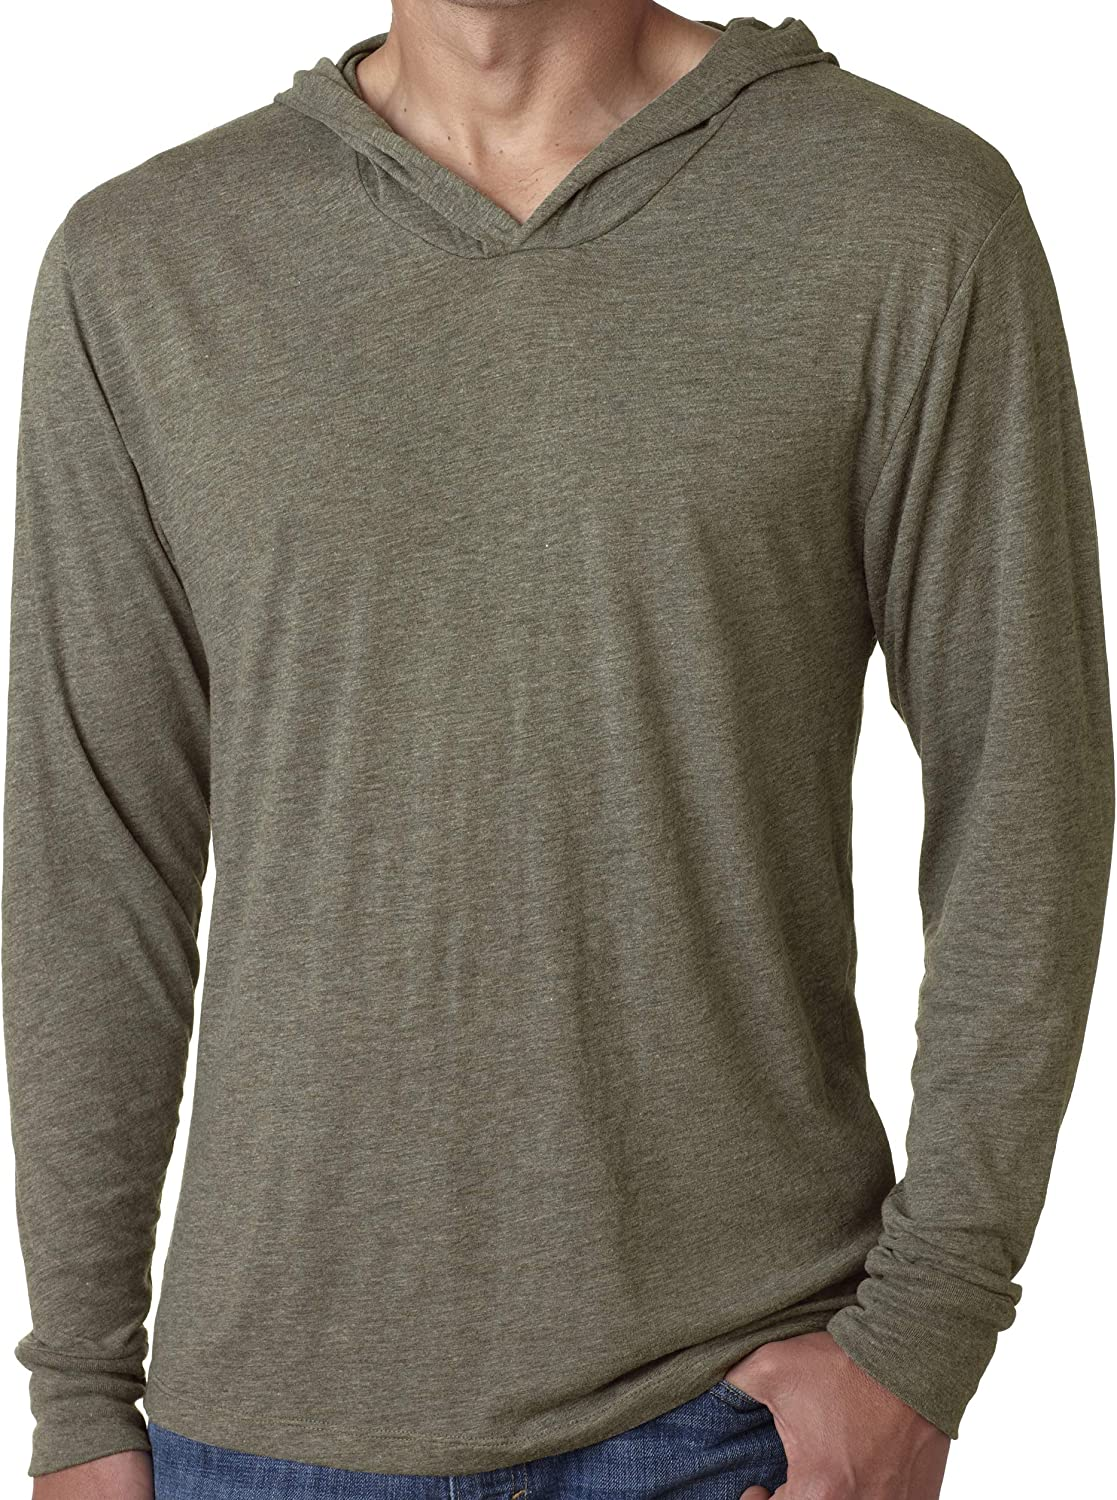 Yoga Clothing For You Mens Triblend Lightweight Hoodie Tee Shirt